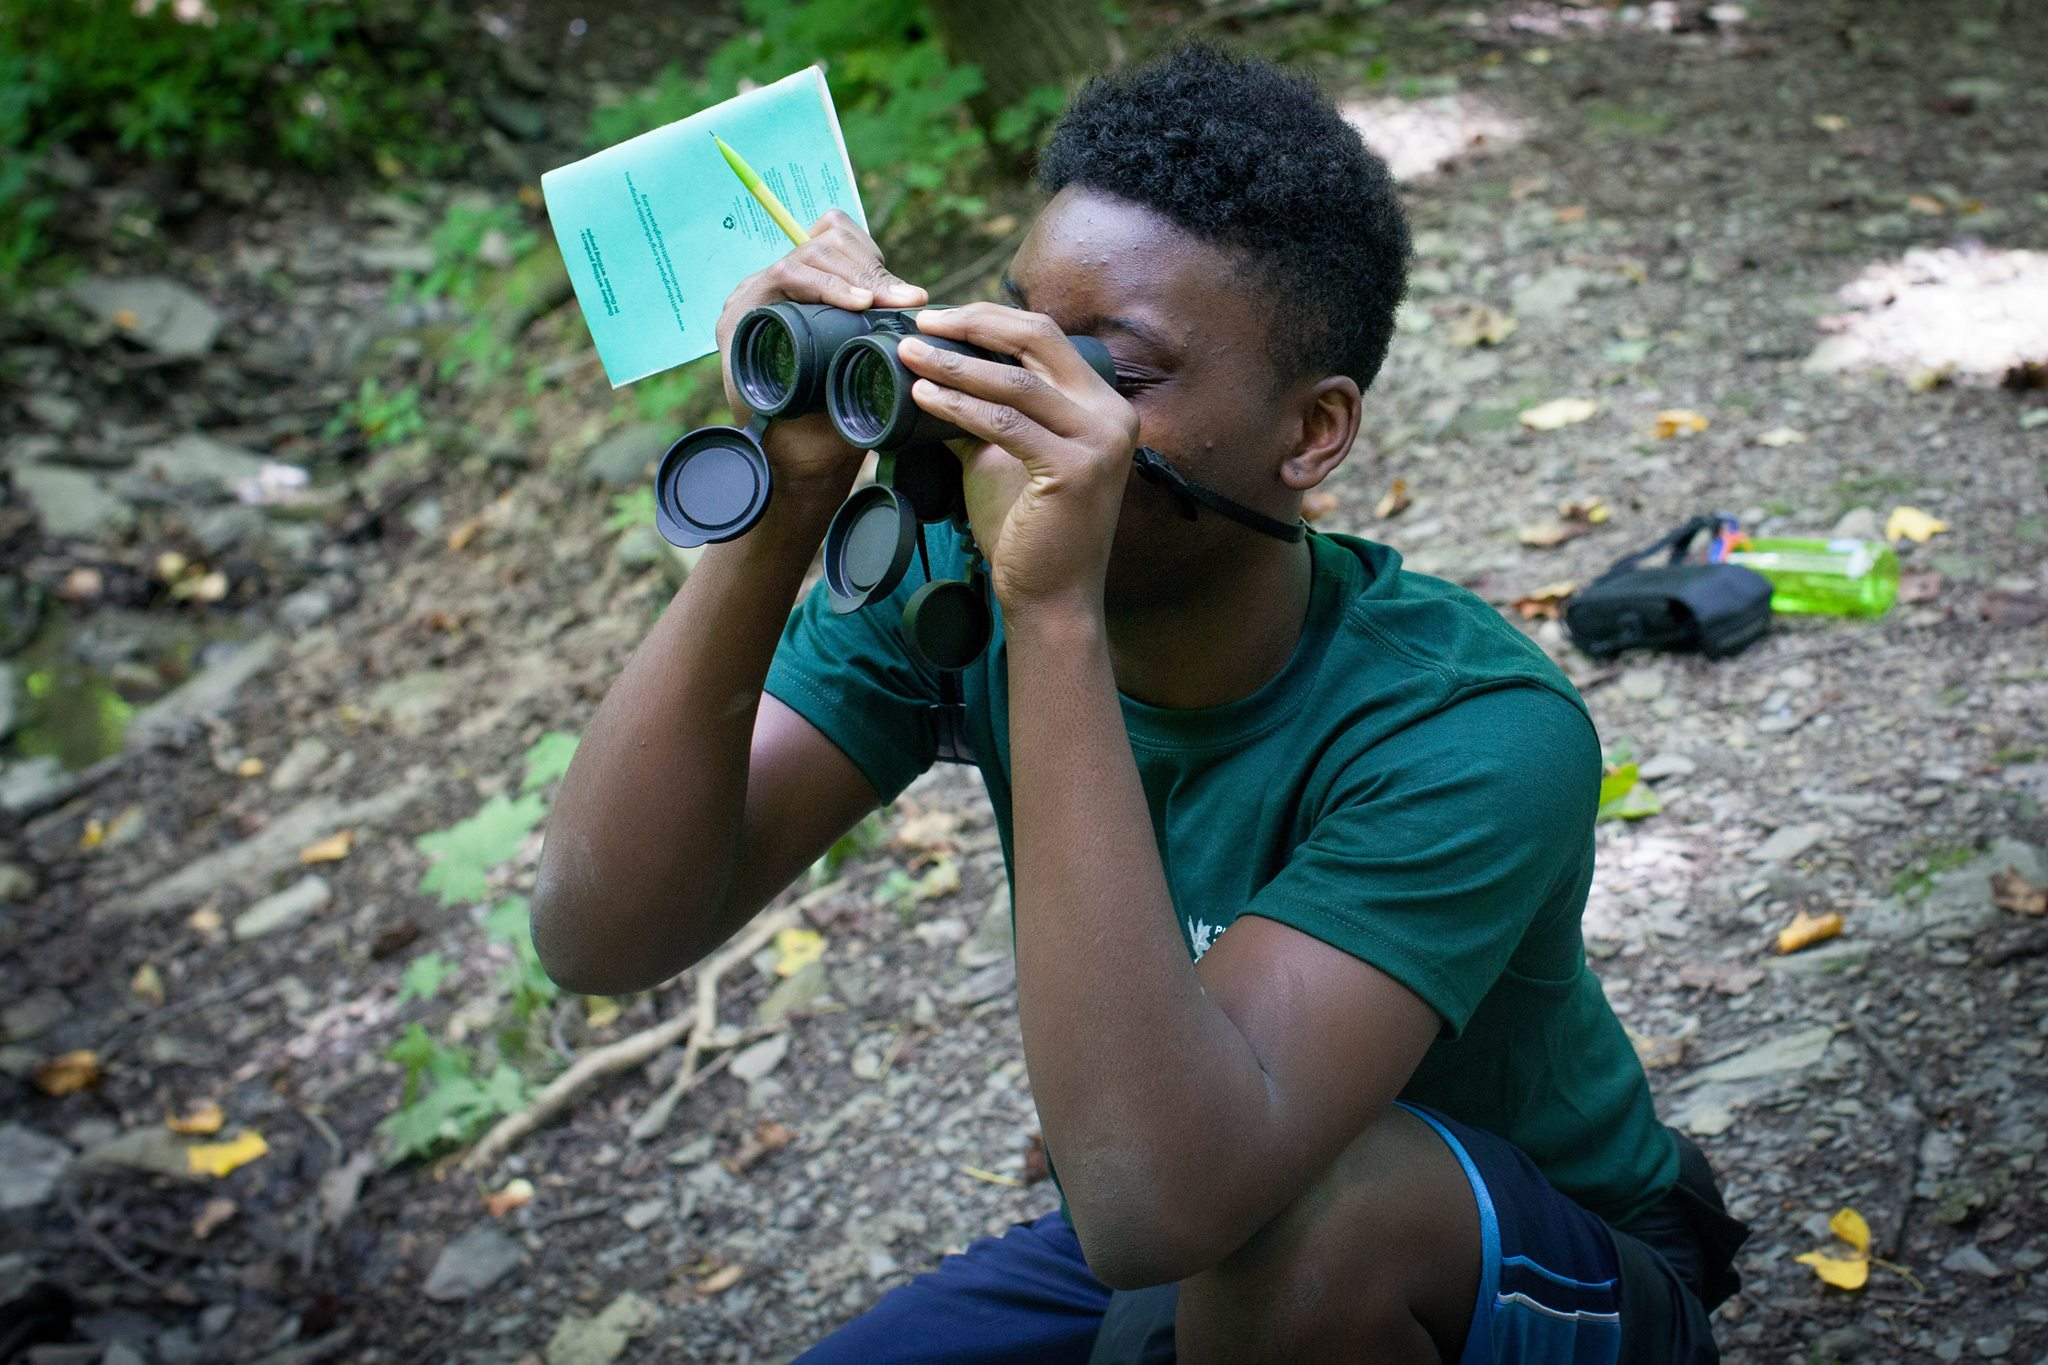 A young person looking through binoculars